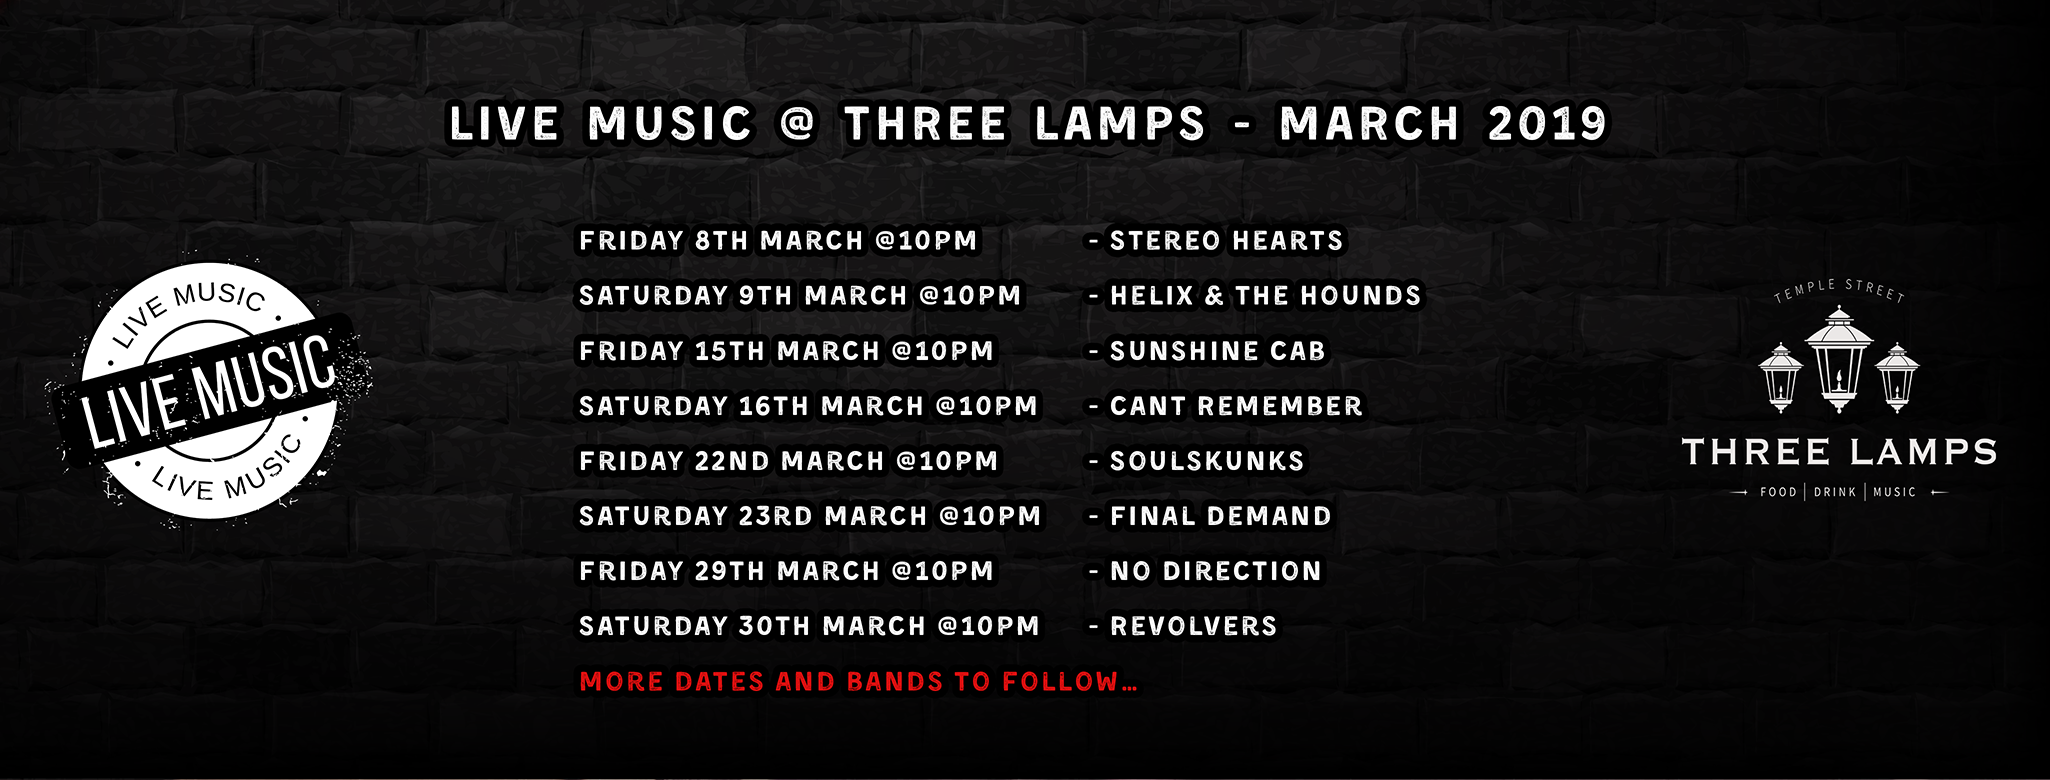 Live_Music_dates_Mar_19.png